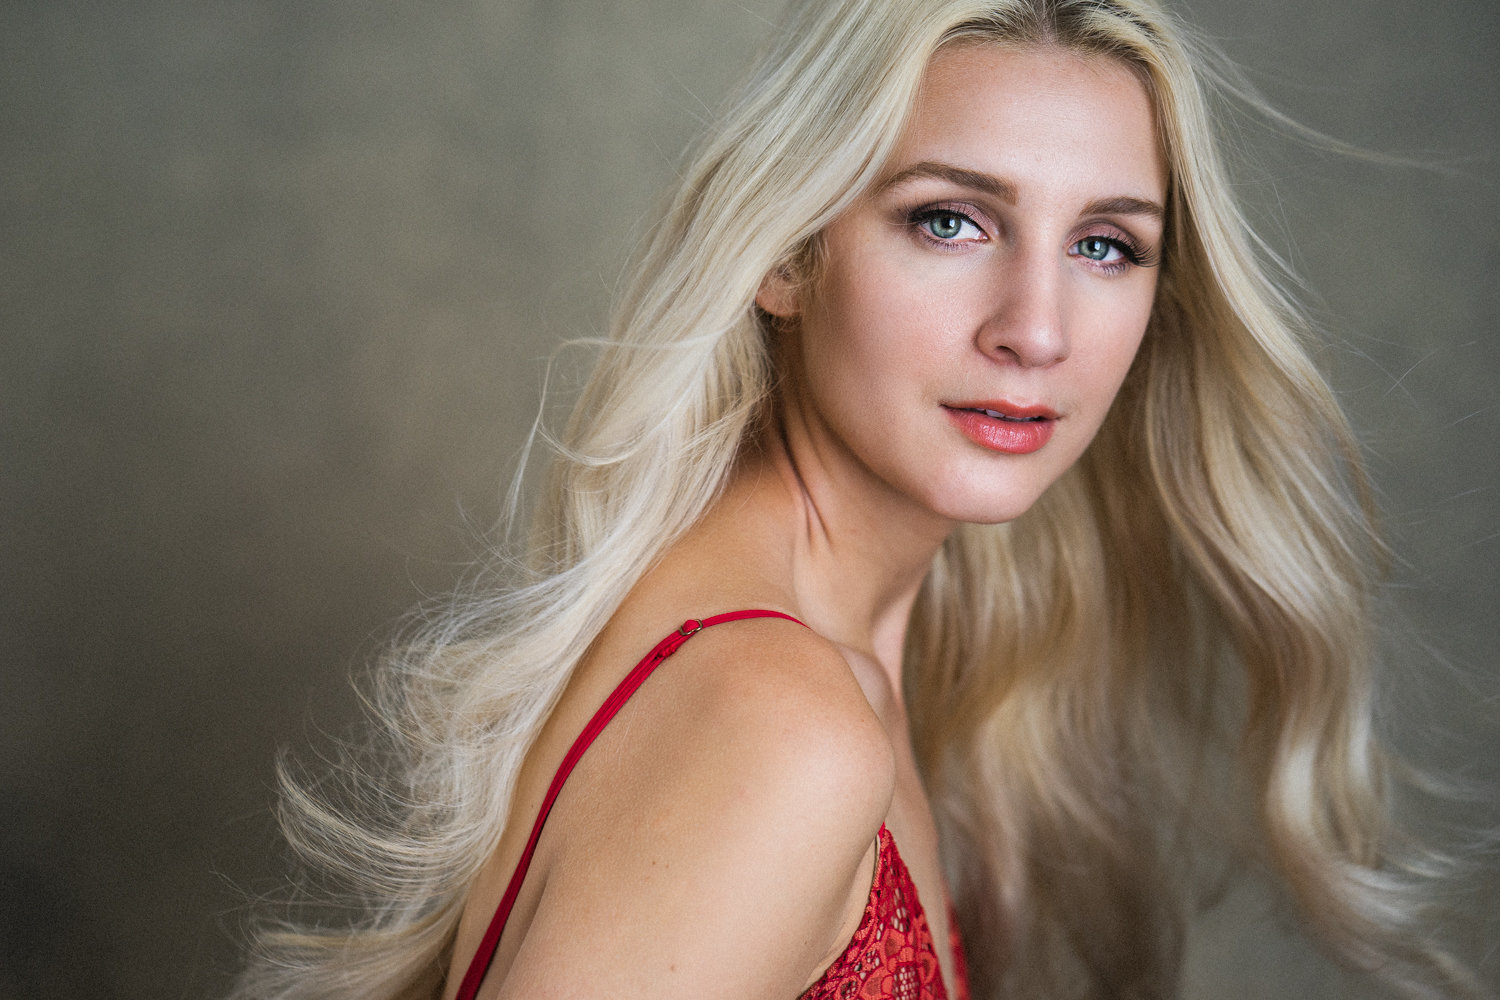 Portrait of a beautiful blonde woman in a red dress